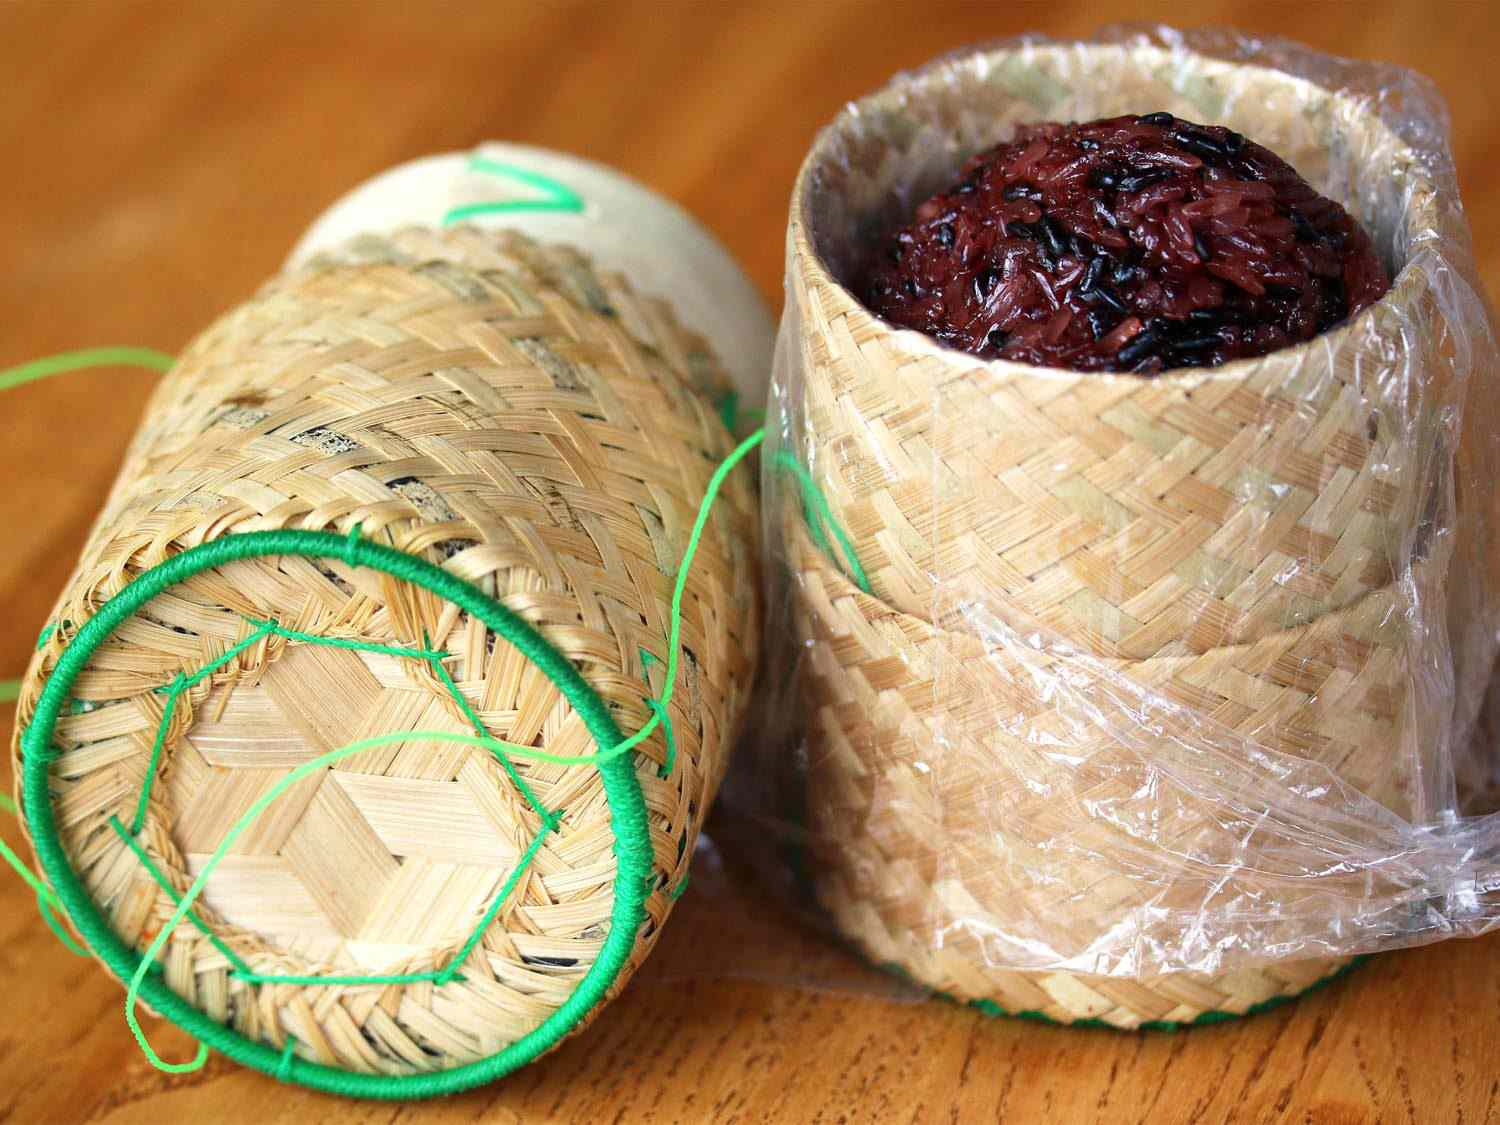 A woven basket (thip khao) with a cover, holding a mound of dark grains of sticky rice (khao niew)